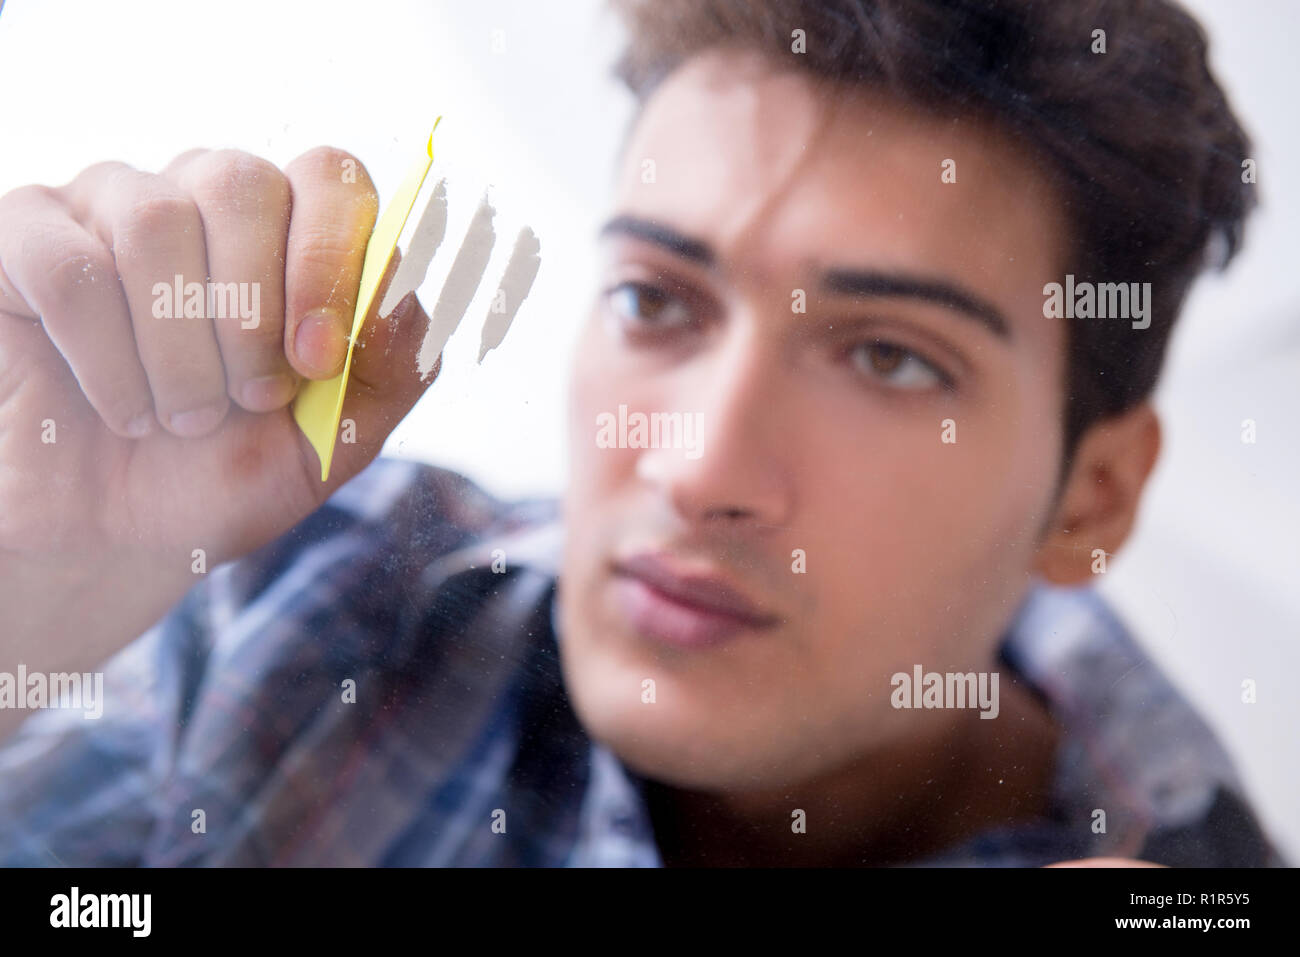 Drug addict sniffing cocaine narcotic Stock Photo: 224859017 - Alamy